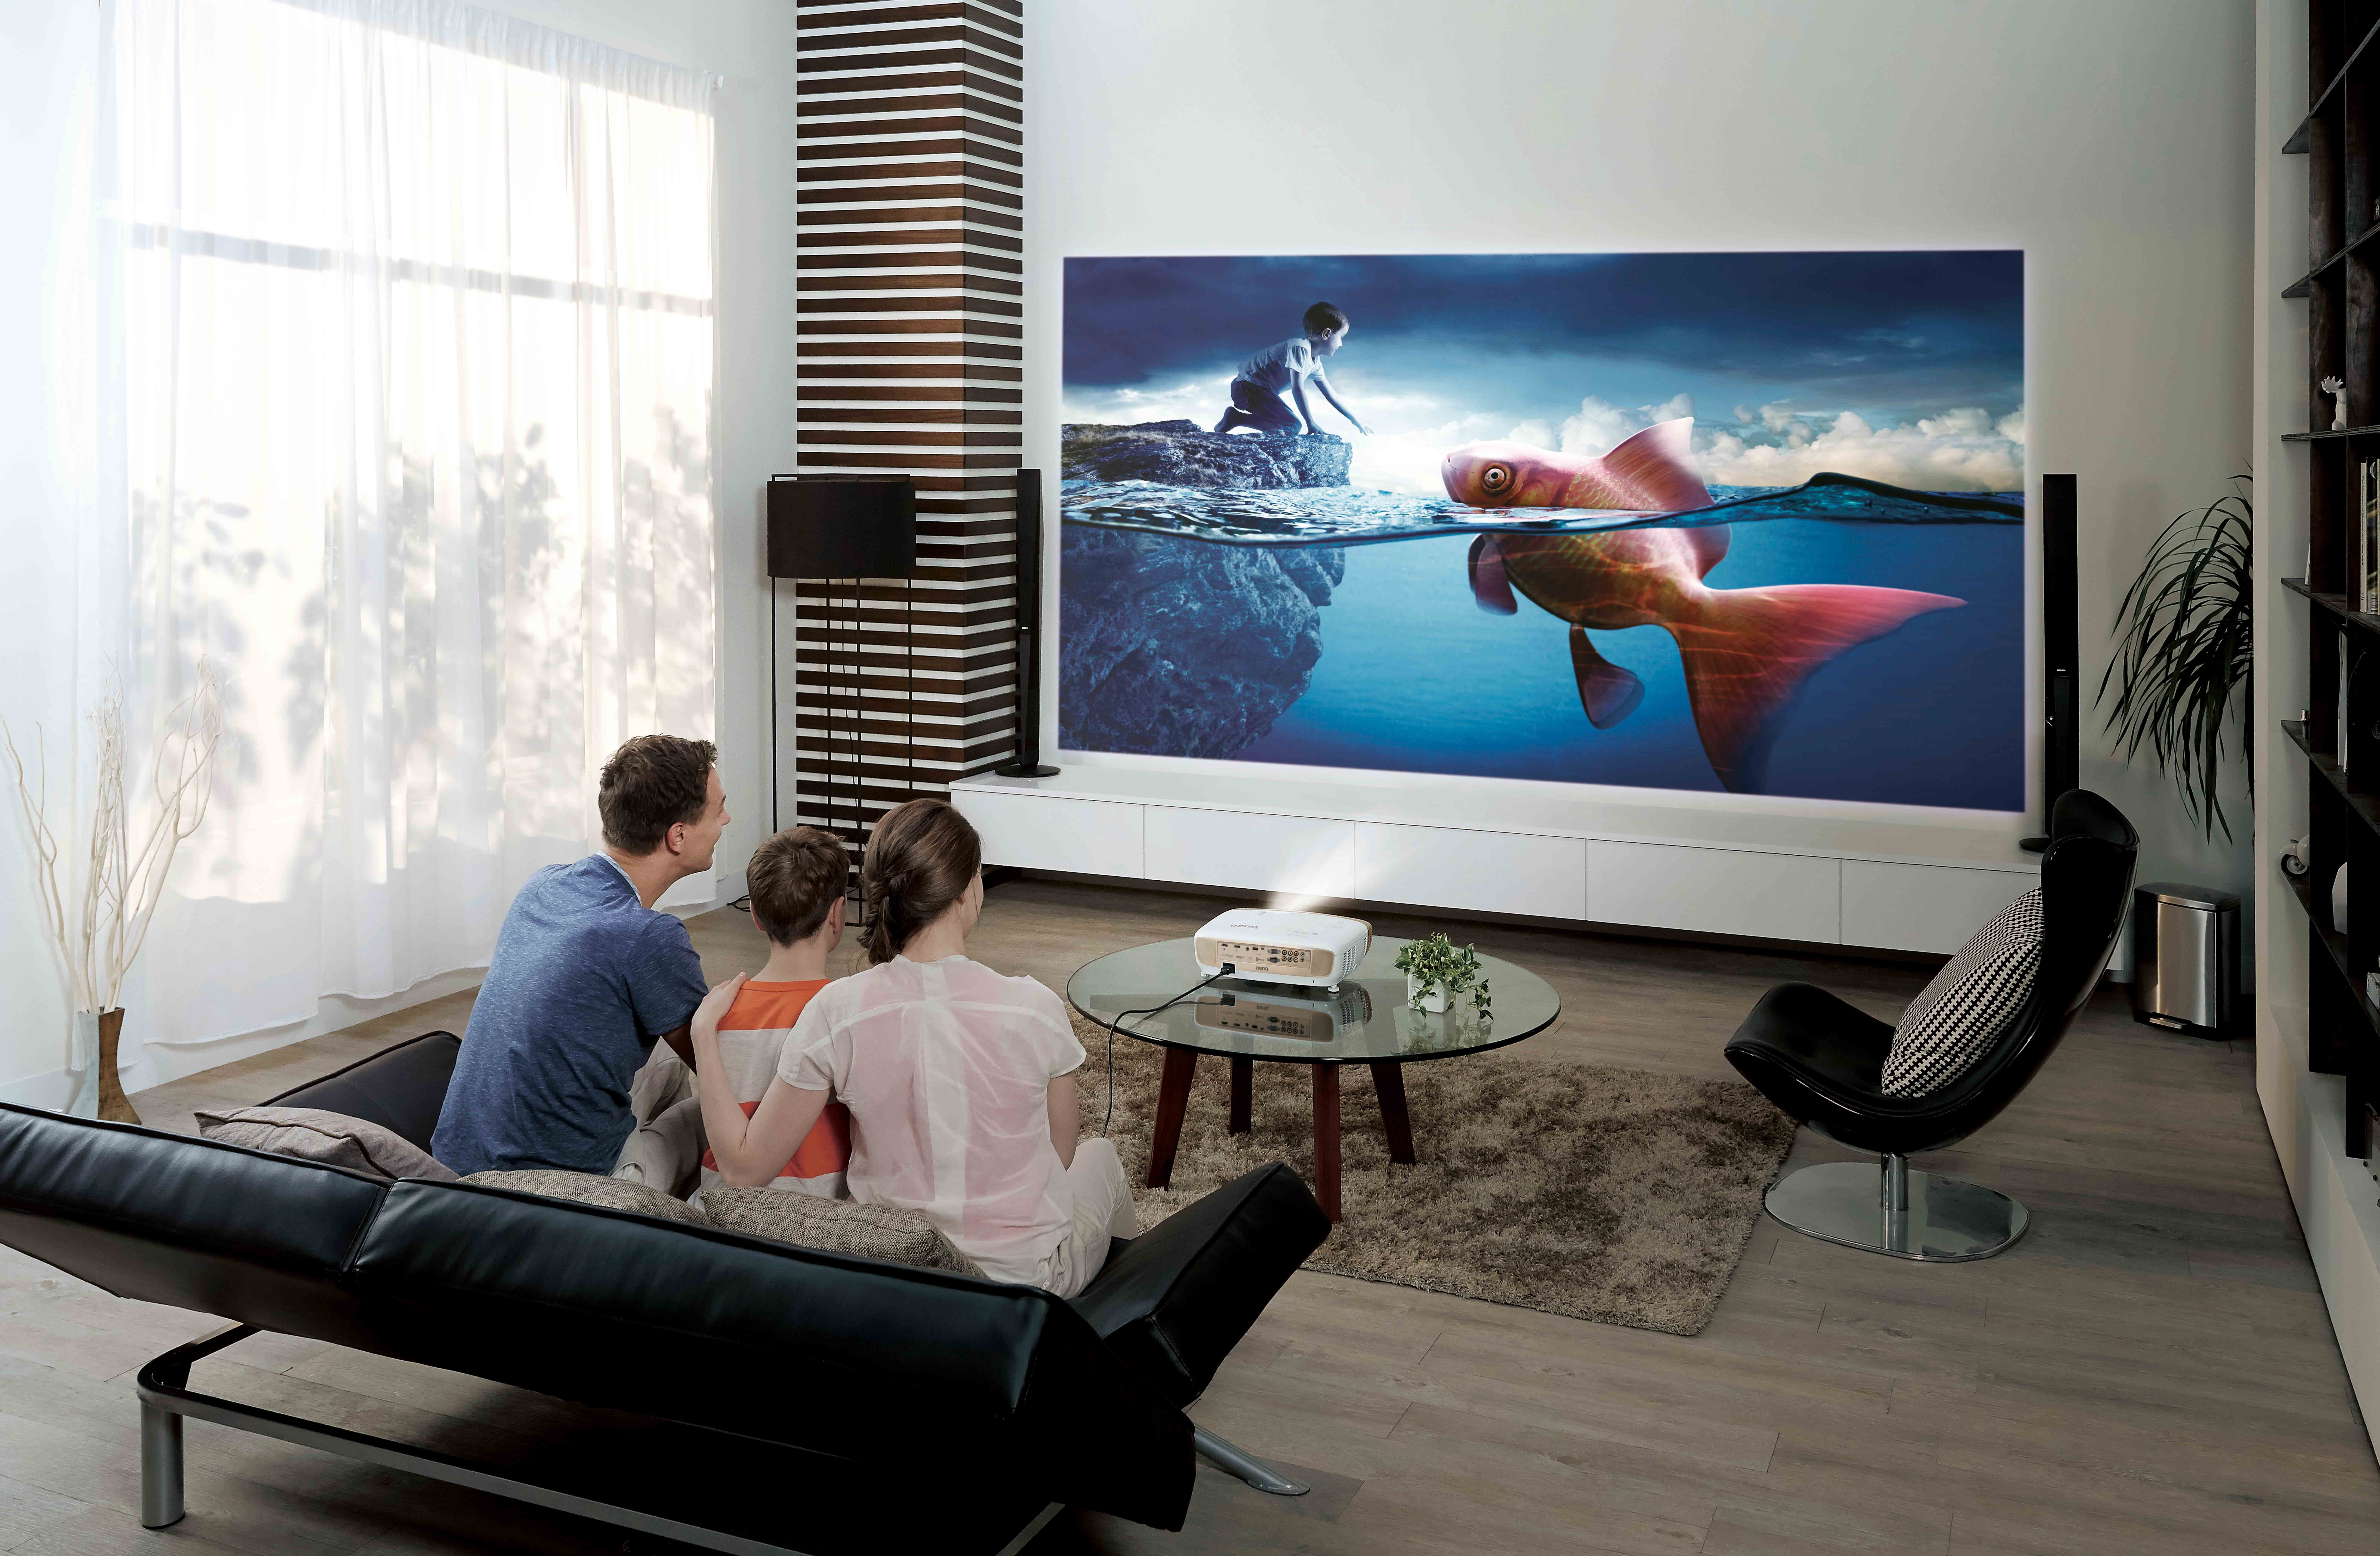 BenQ projector home theater experience